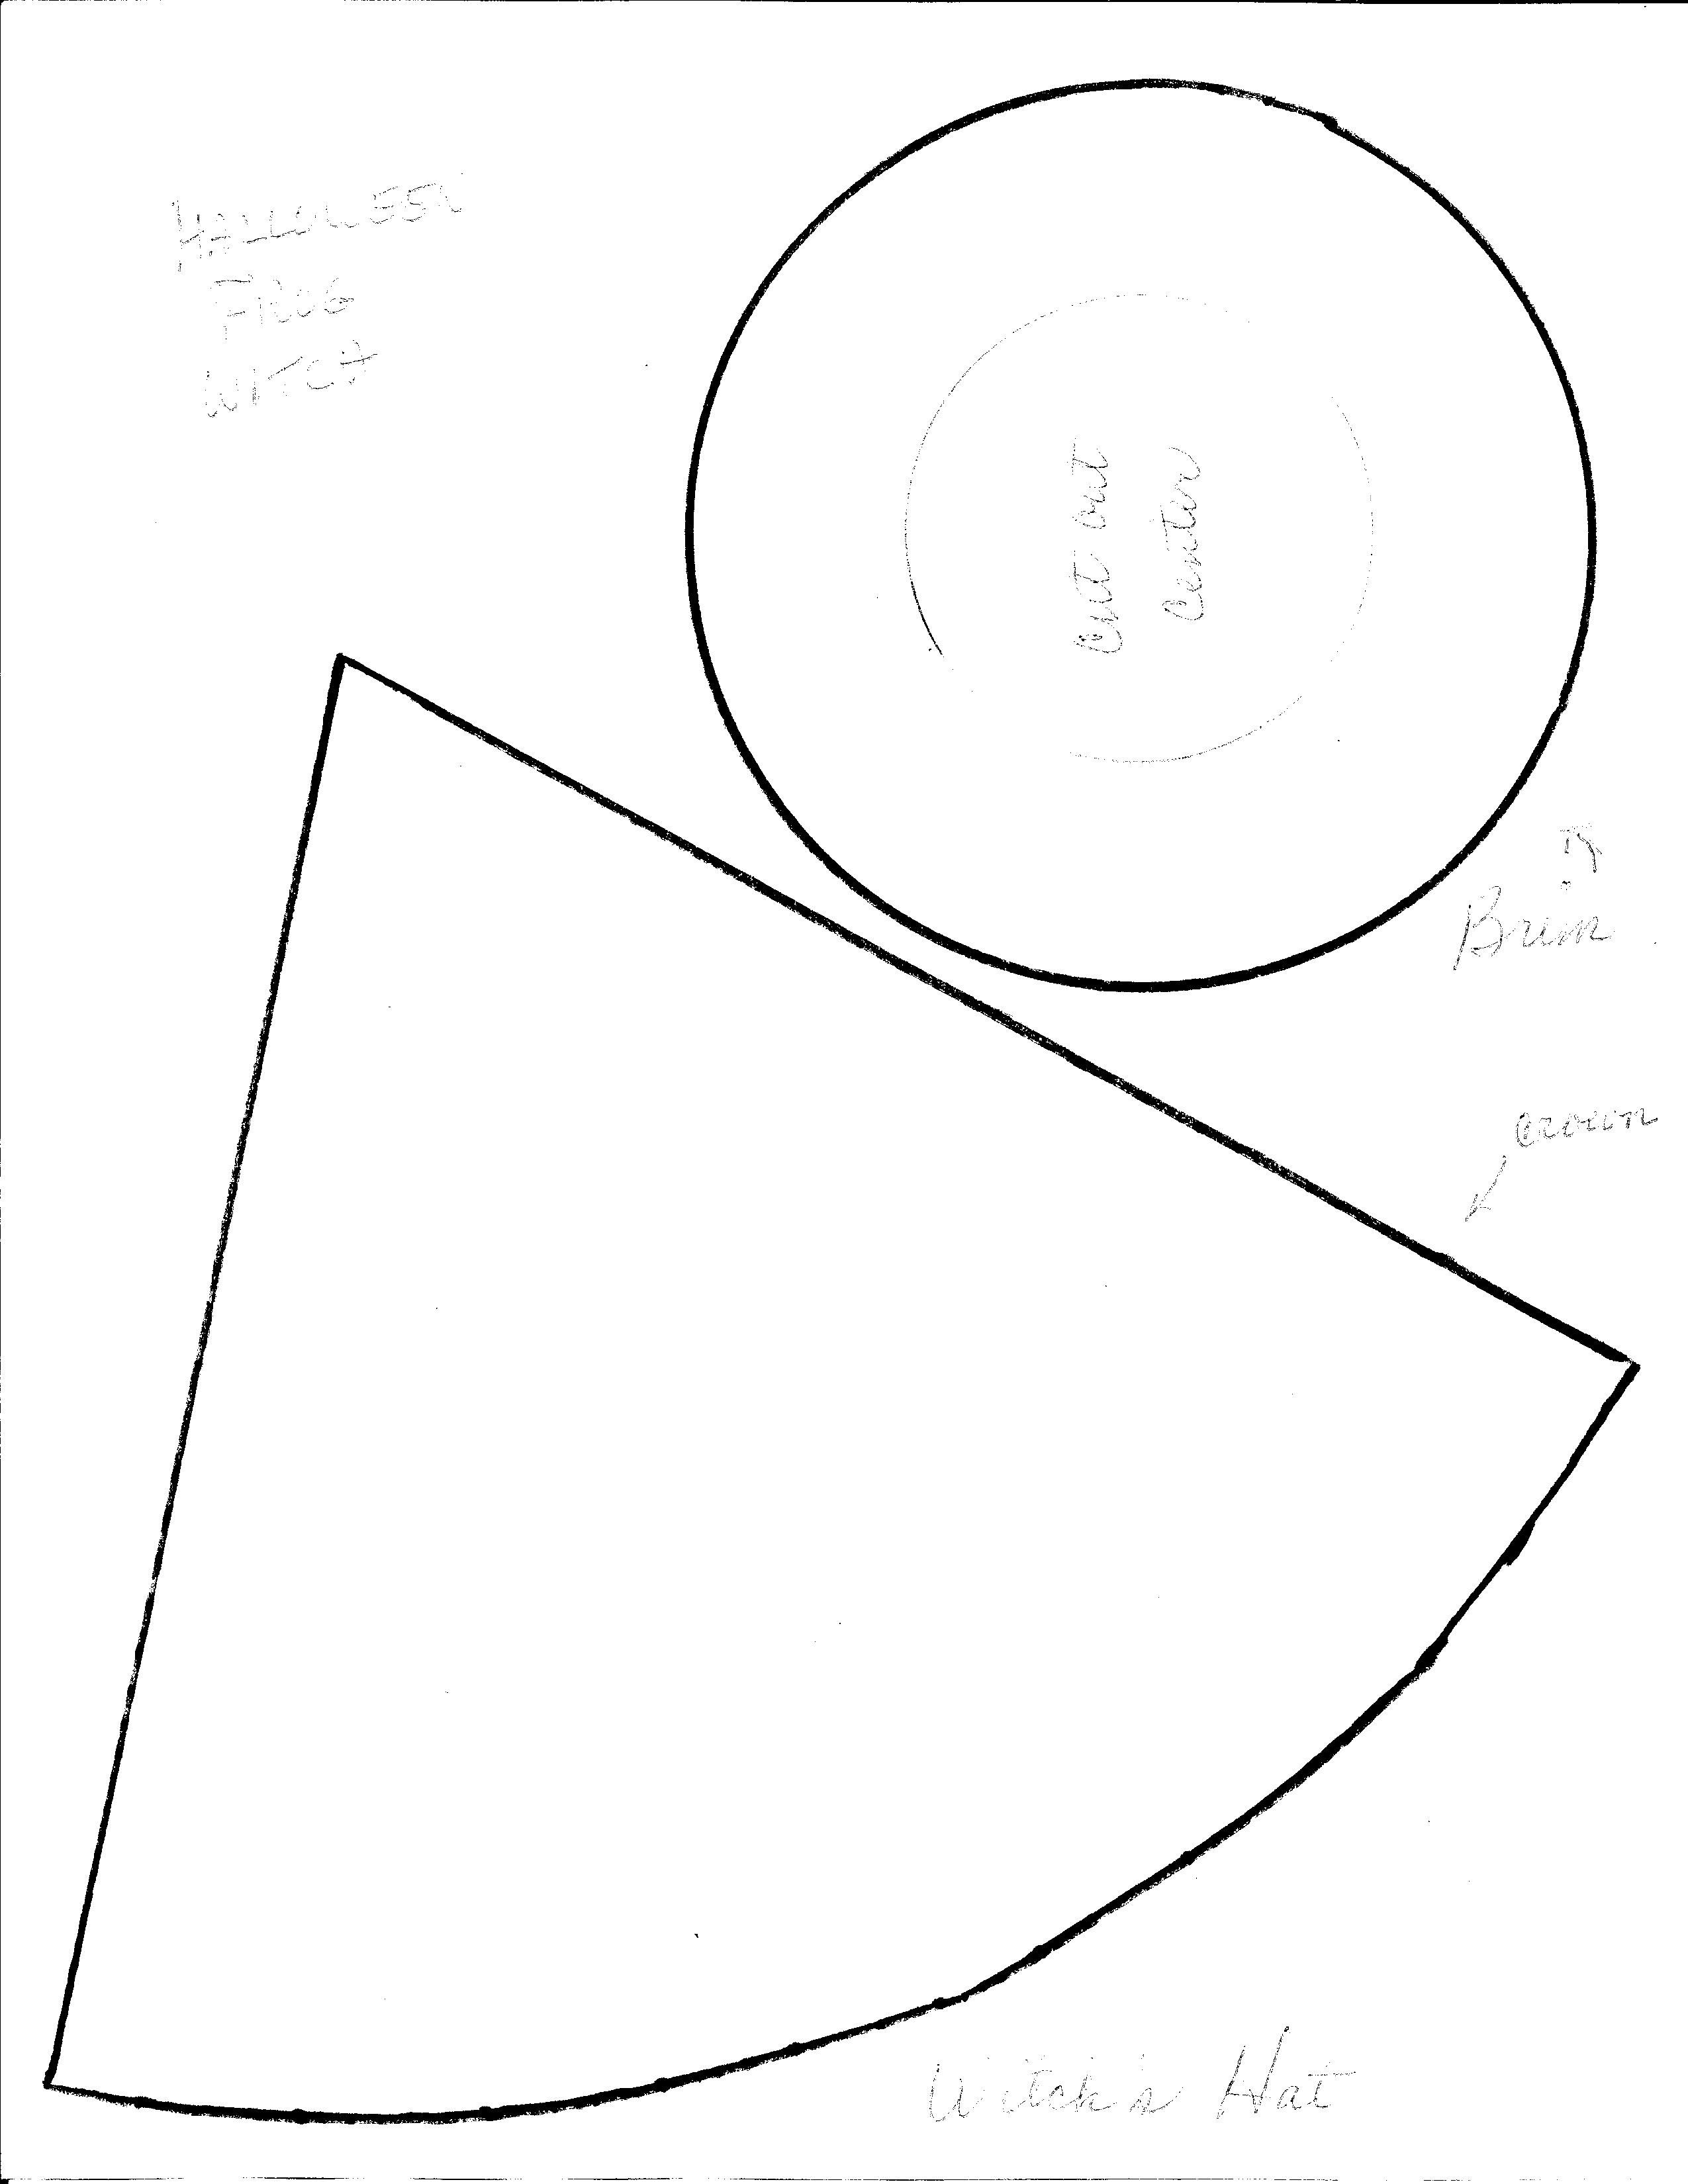 witch hat template | halloween | Pinterest | Hat template, Witches ...